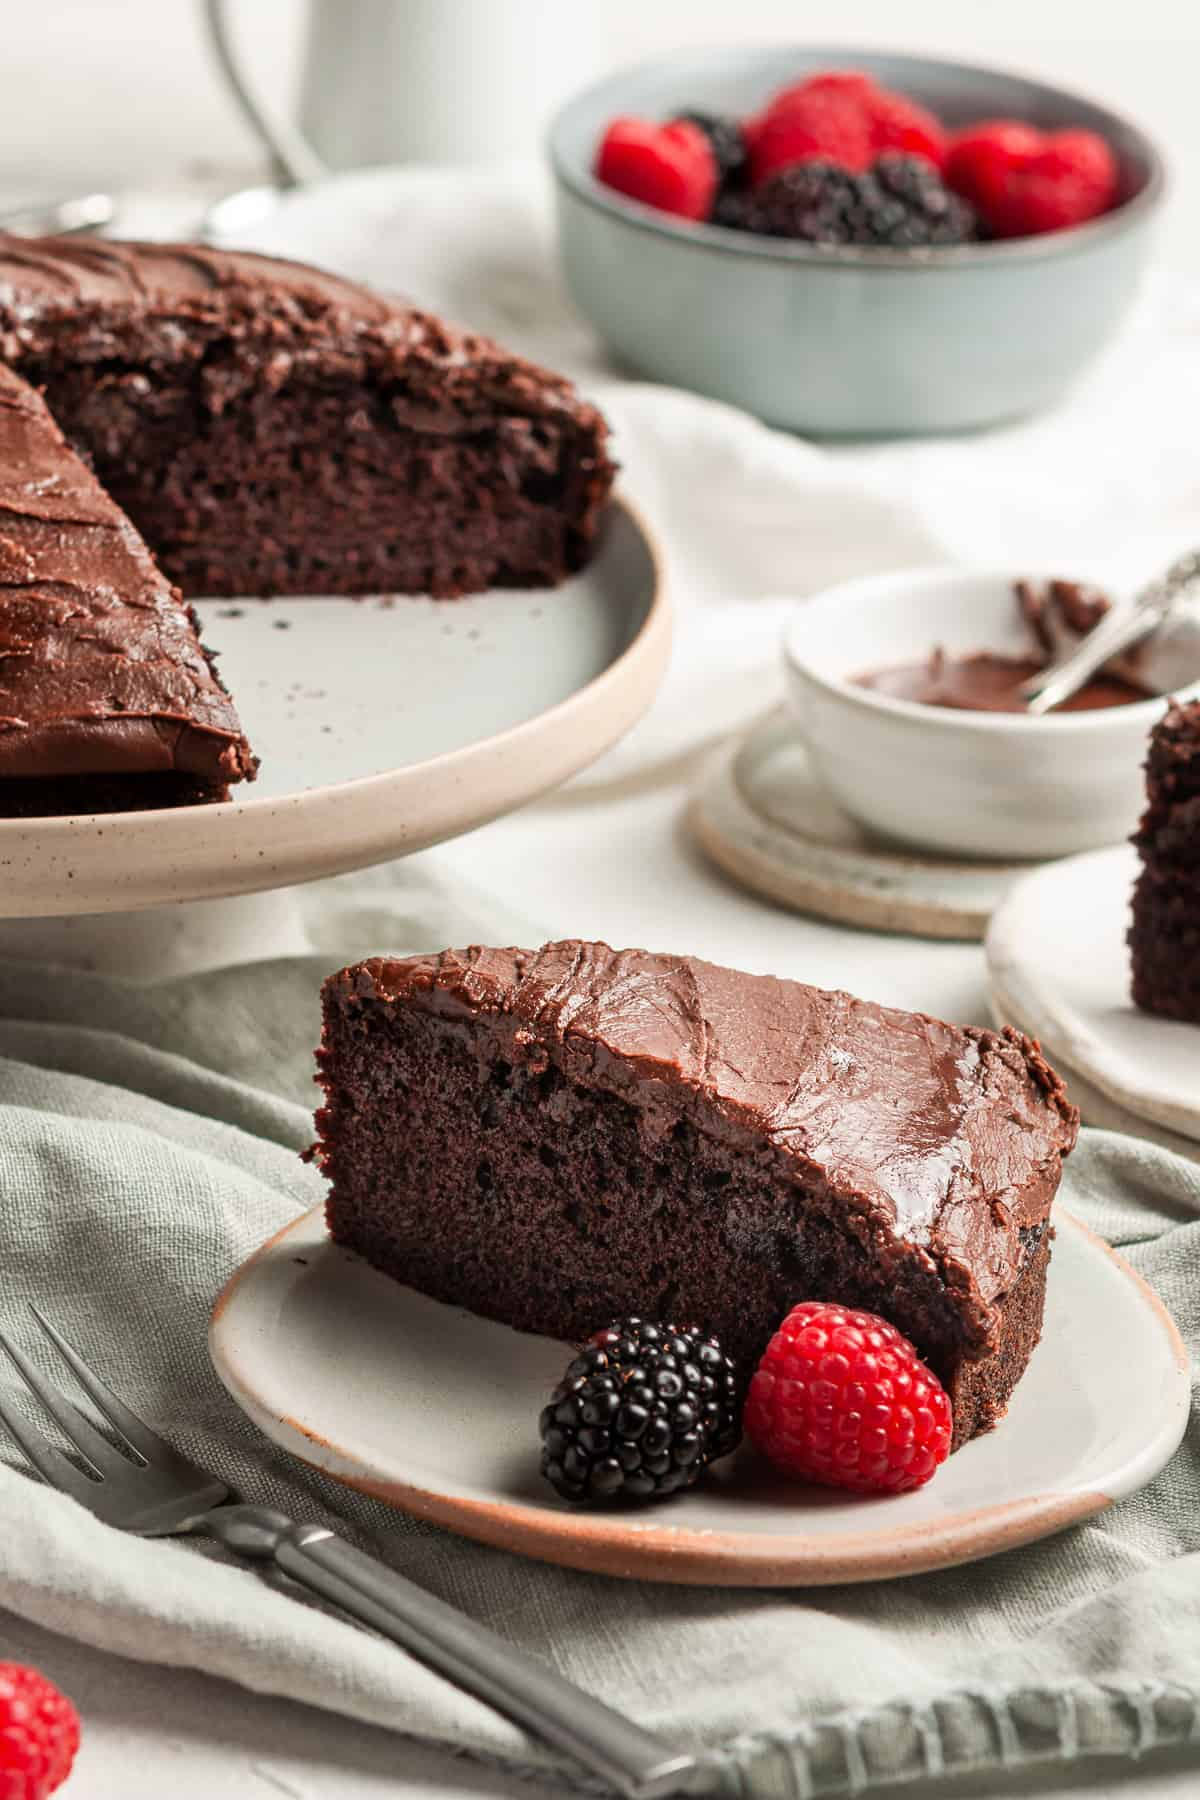 Slice of cake, sitting on a plate with some berries, with the rest of the cake in the background.